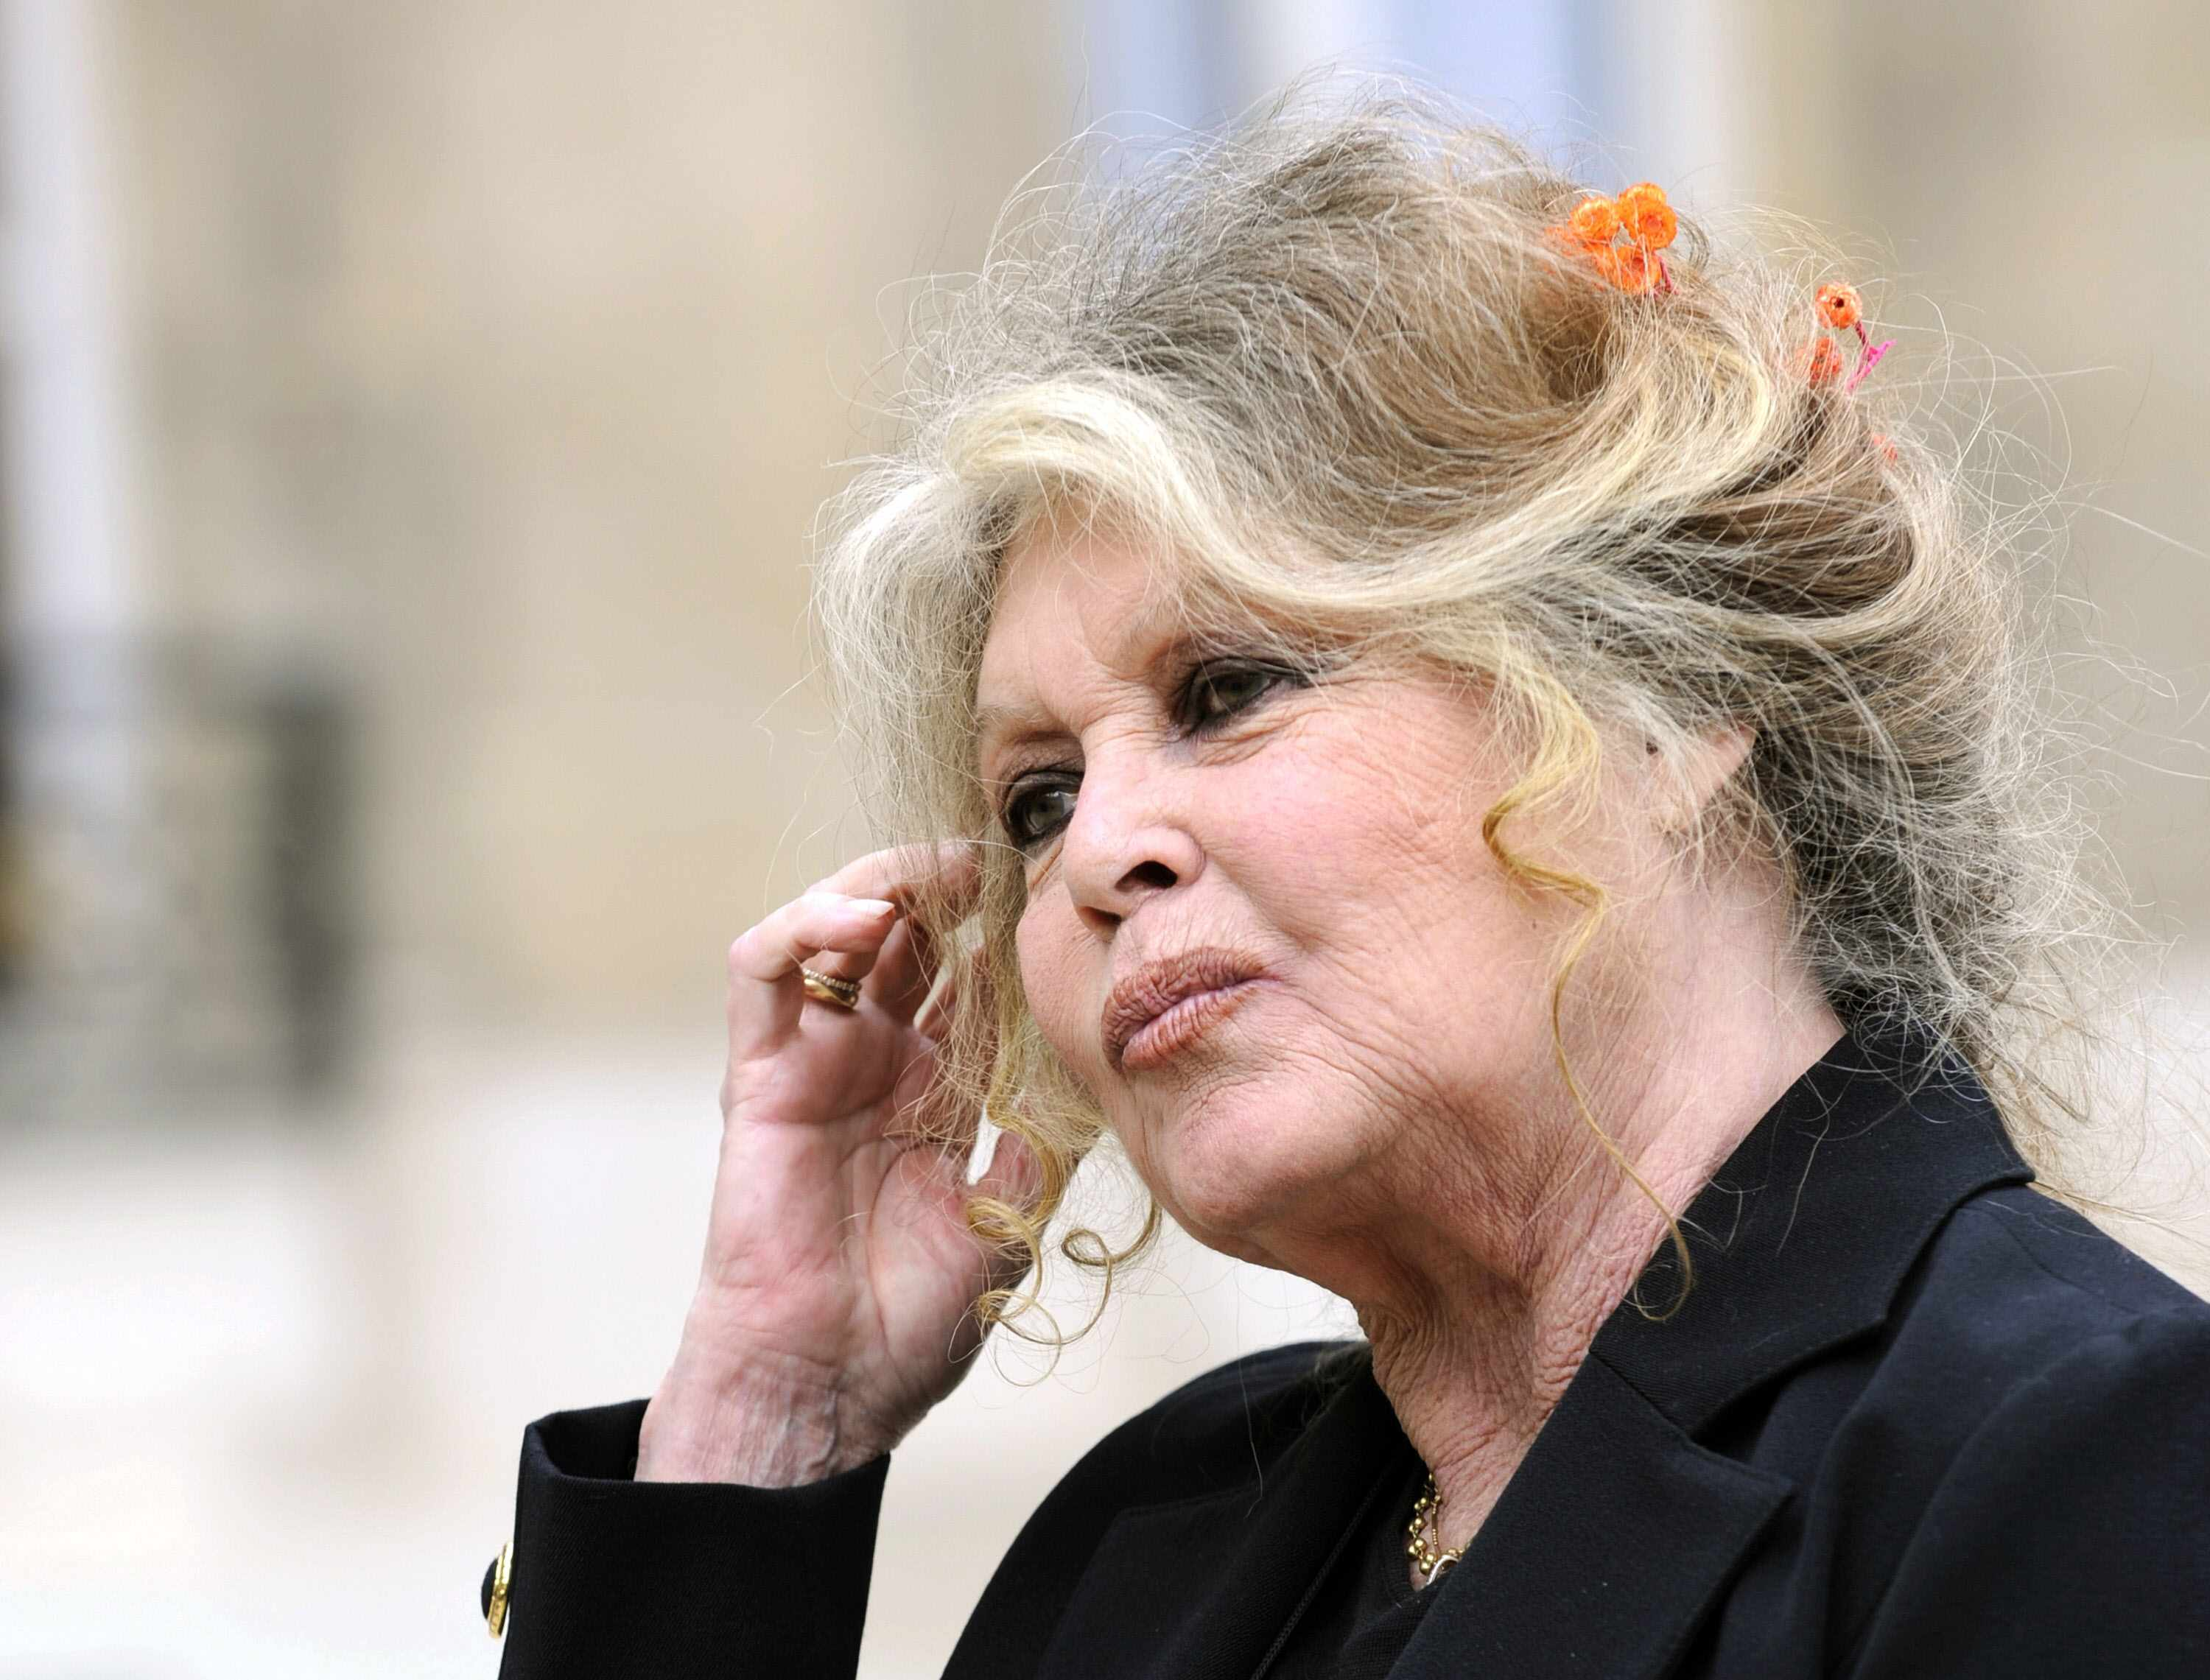 FILES - A picture taken on September 27, 2007 shows French film legend and animal rights activist Brigitte Bardot posing at the Elysee palace in Paris after a meeting with French President Nicolas Sarkozy. Bardot, France's 1960s screen icon, received a 15,000-euro (23,000 dollar) fine on June 3, 2008 for inciting hatred against Muslims.     AFP PHOTO ERIC FEFERBERG         (Photo credit should read ERIC FEFERBERG/AFP/Getty Images)  Getty, TL